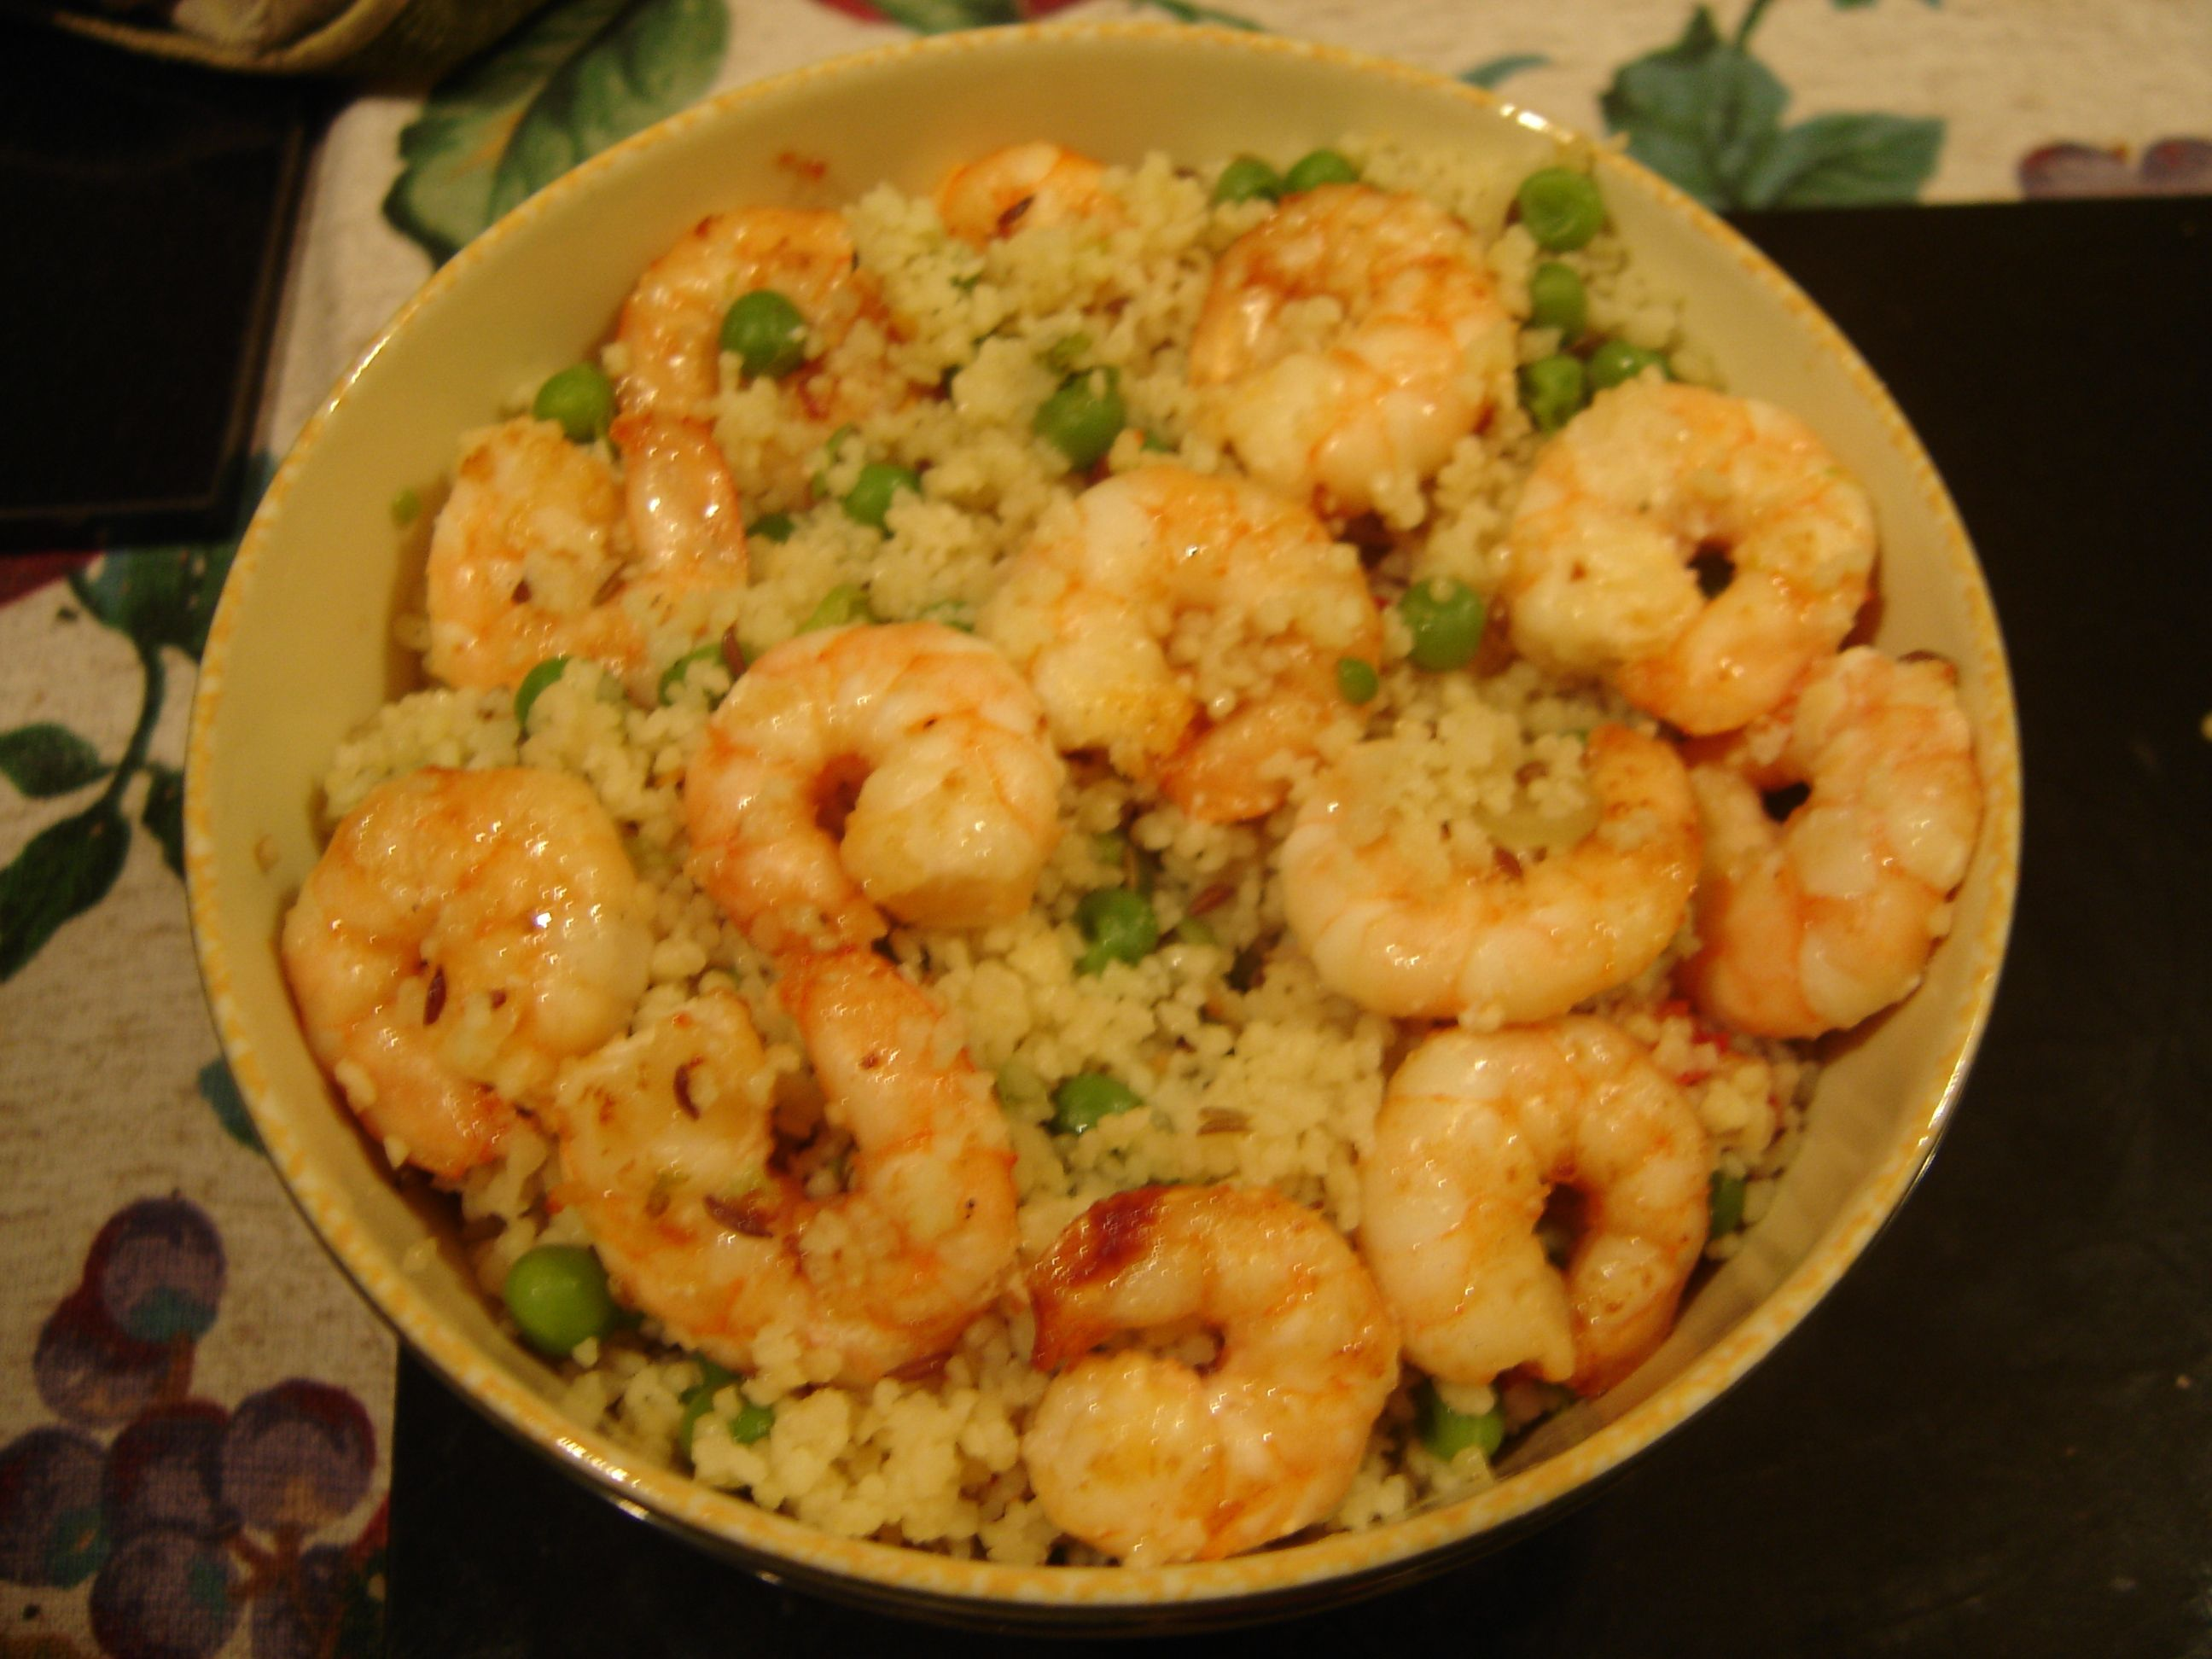 Prawns and rice with peas.